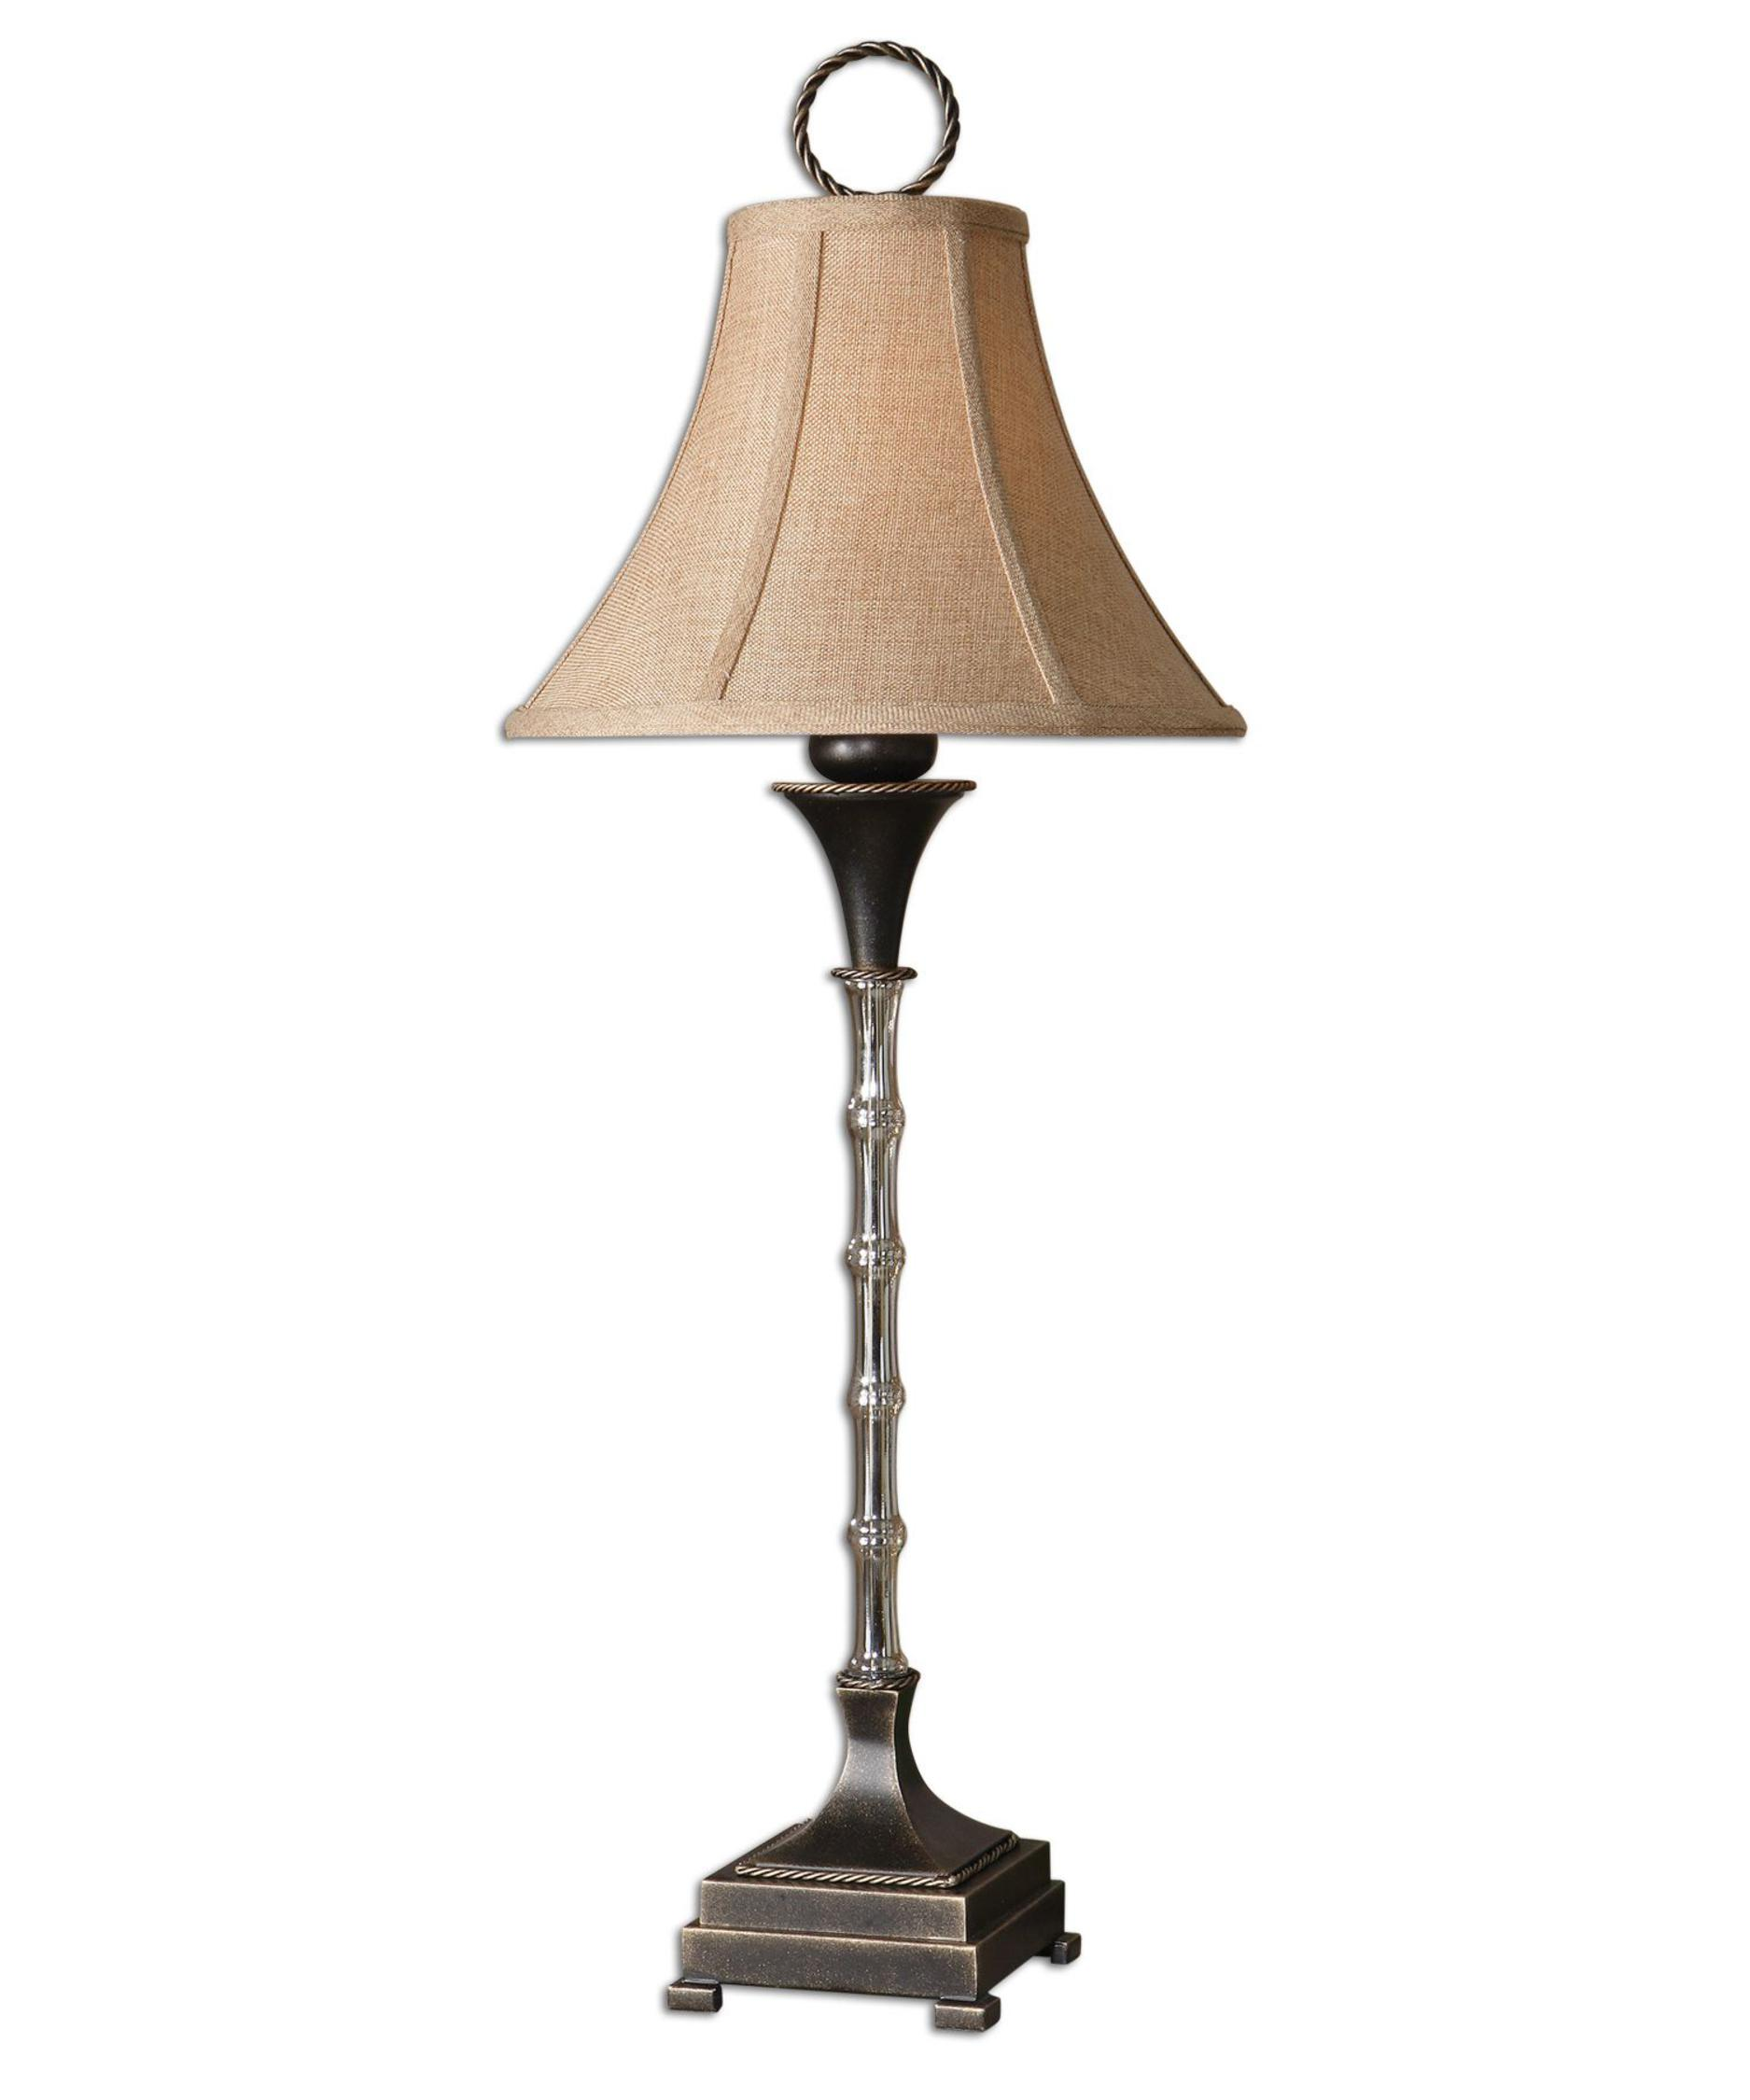 Uttermost 29723 Cantello 36 Inch Table Lamp